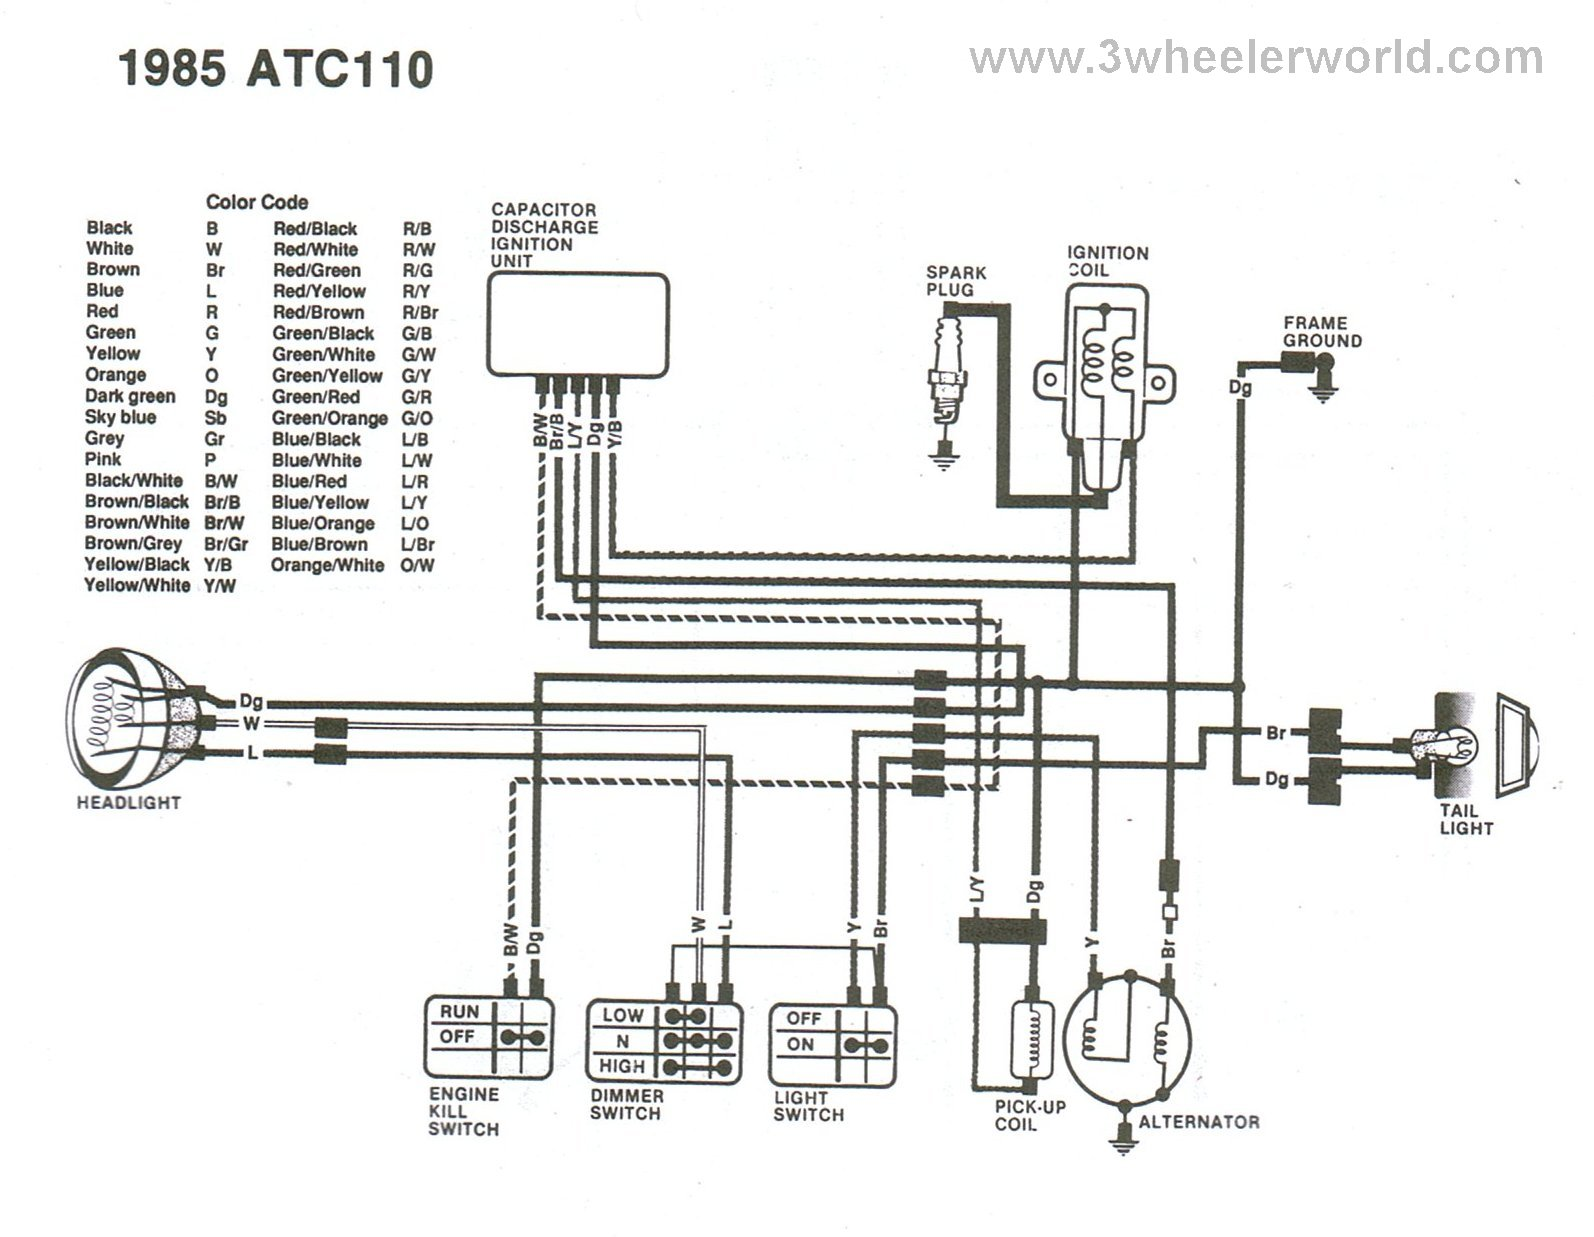 hight resolution of eaton atc wiring diagram wiring diagram autovehicle atc wiring diagram wiring diagram toolbox eaton